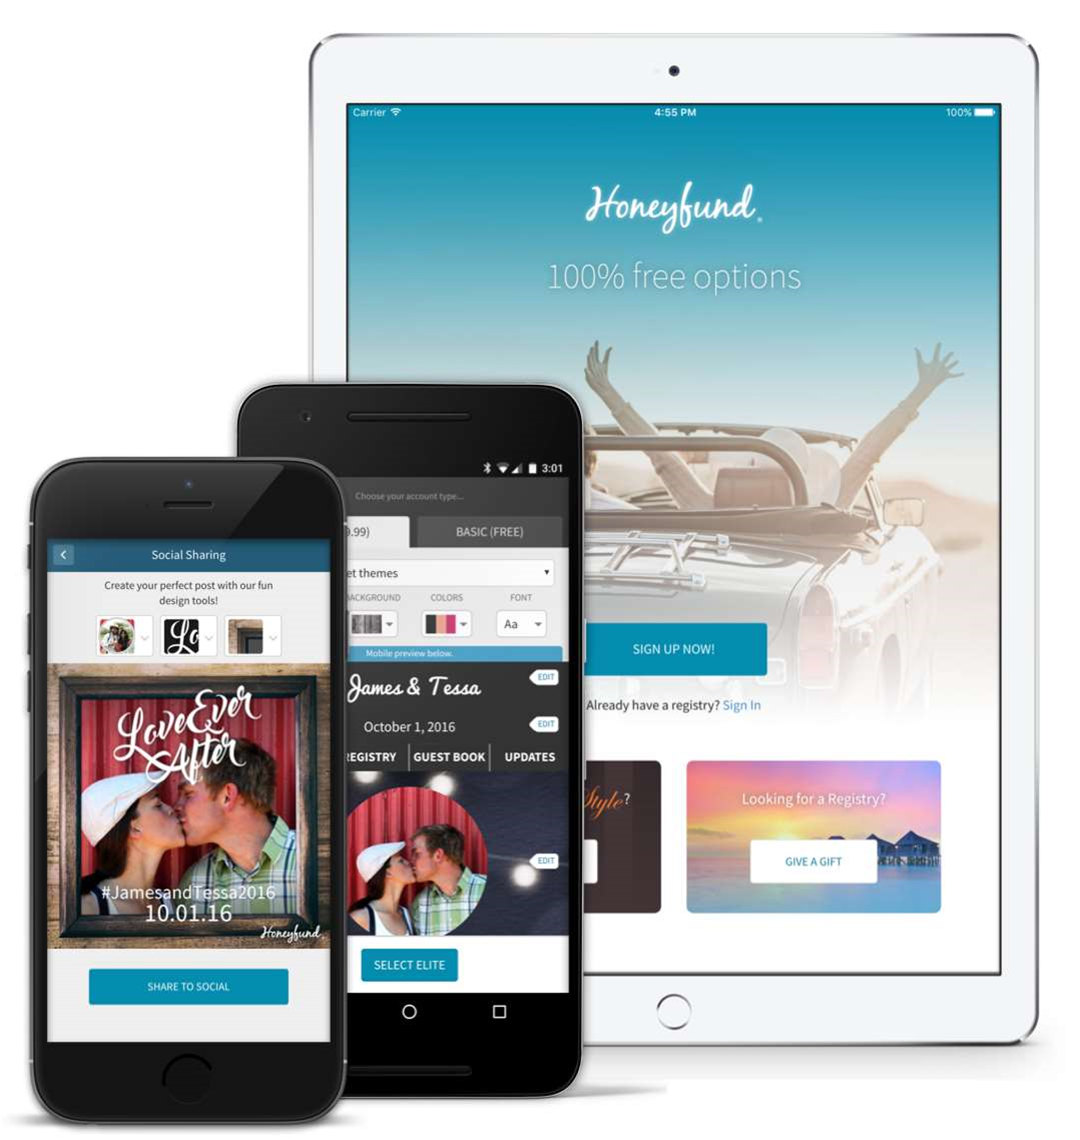 Now there's an app to crowdfund your honeymoon - because romance is expensive.